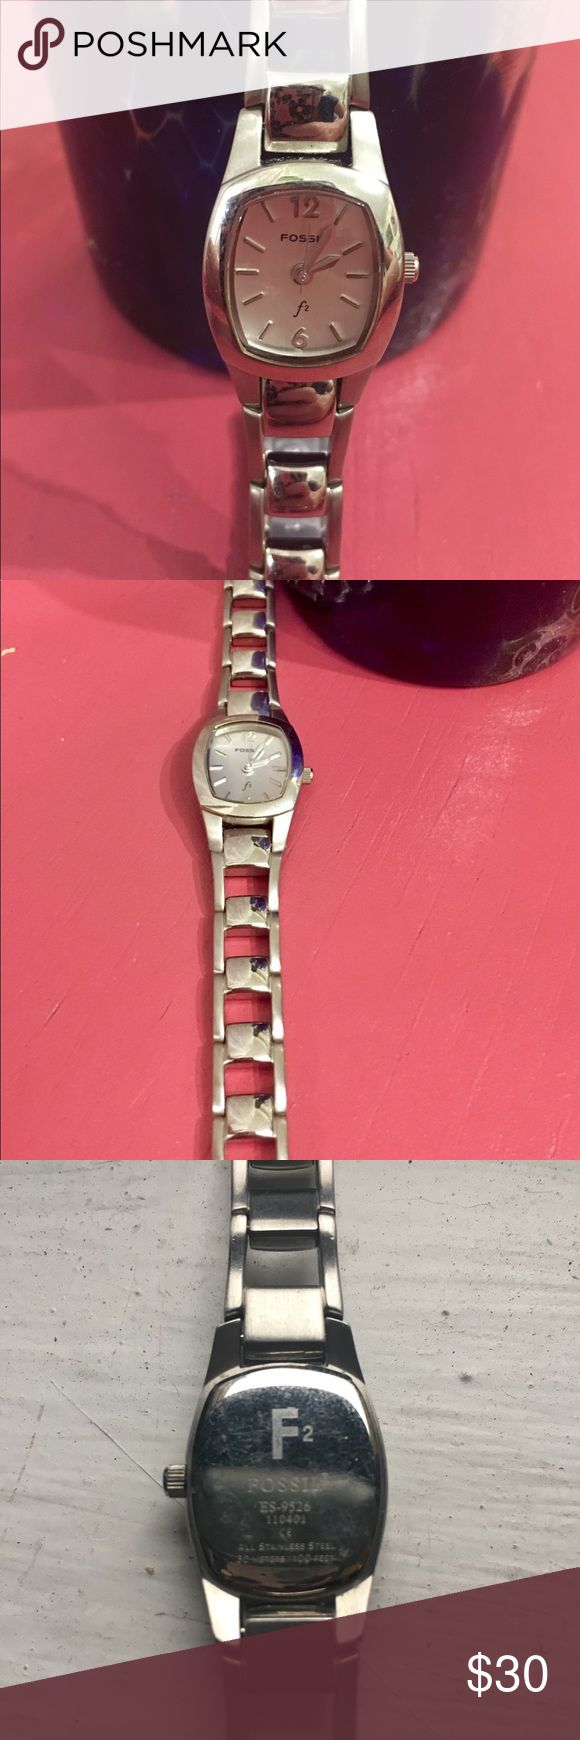 Stainless Steel Watch Never worn. There is an extra link attached. This never fit me correctly. The battery may need to be replaced. Measures 6.6 inches with extra link attached. Fossil Accessories Watches